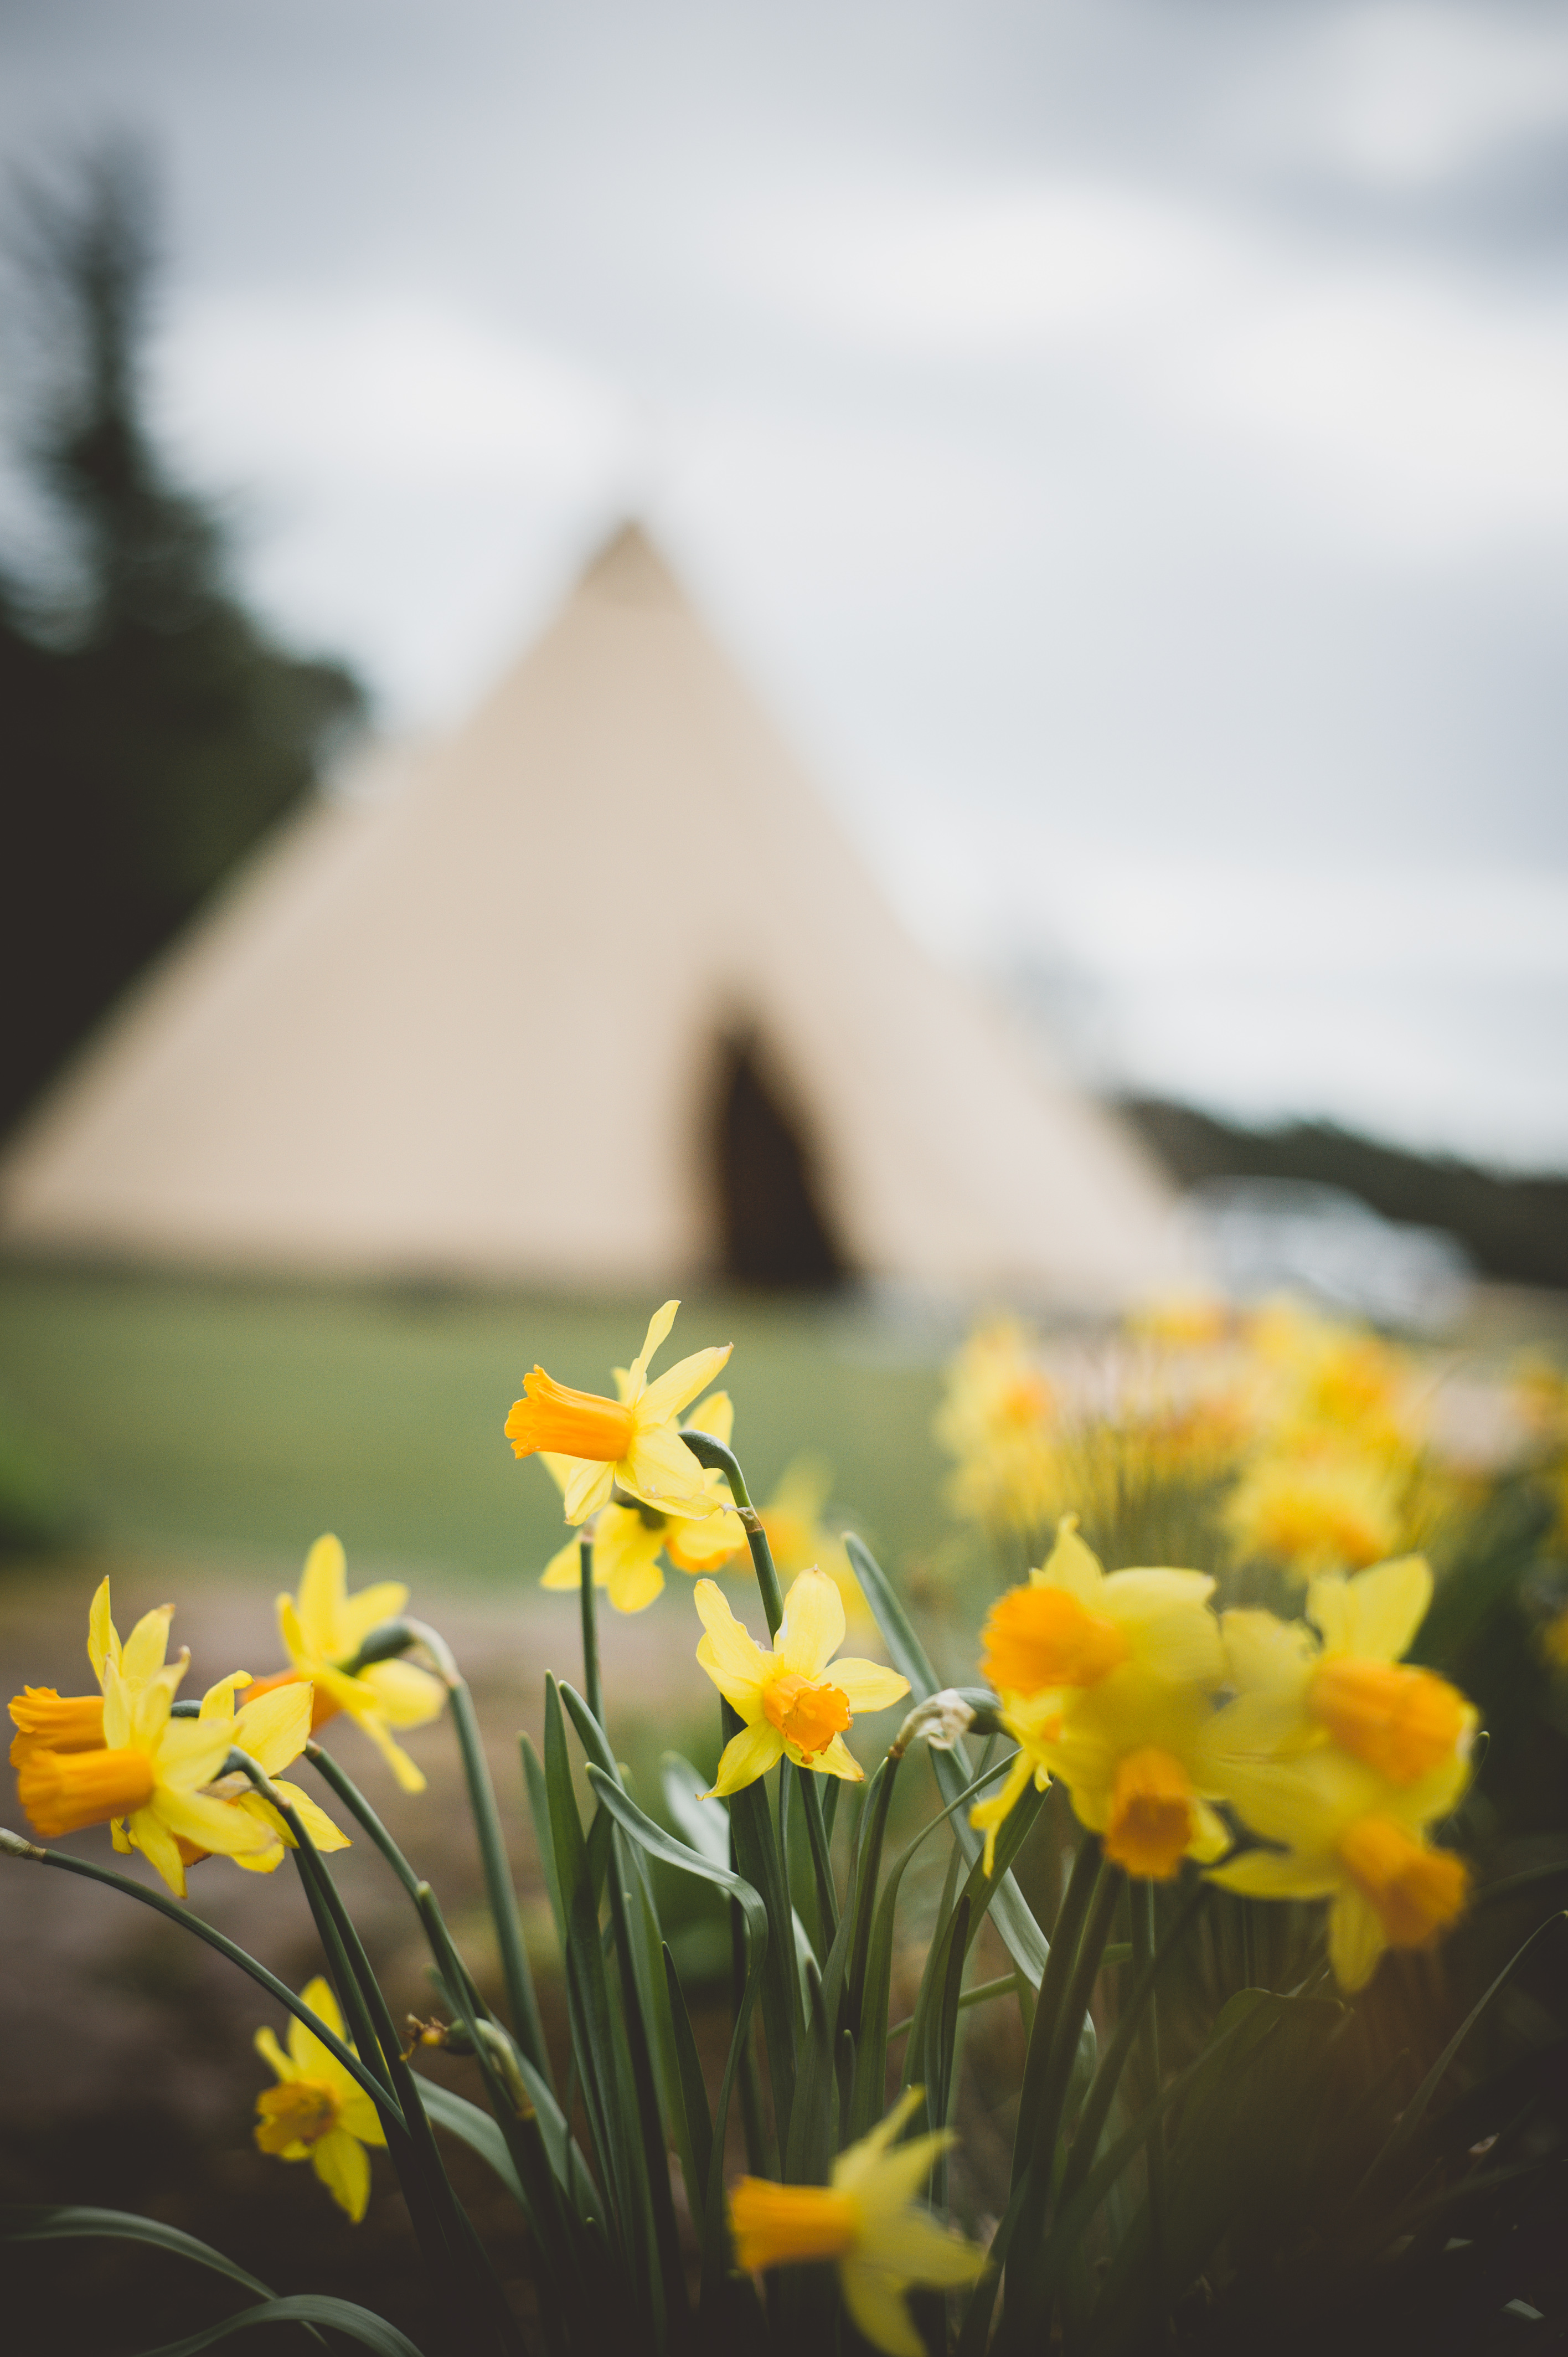 Tipi, Teepee or Marquee?